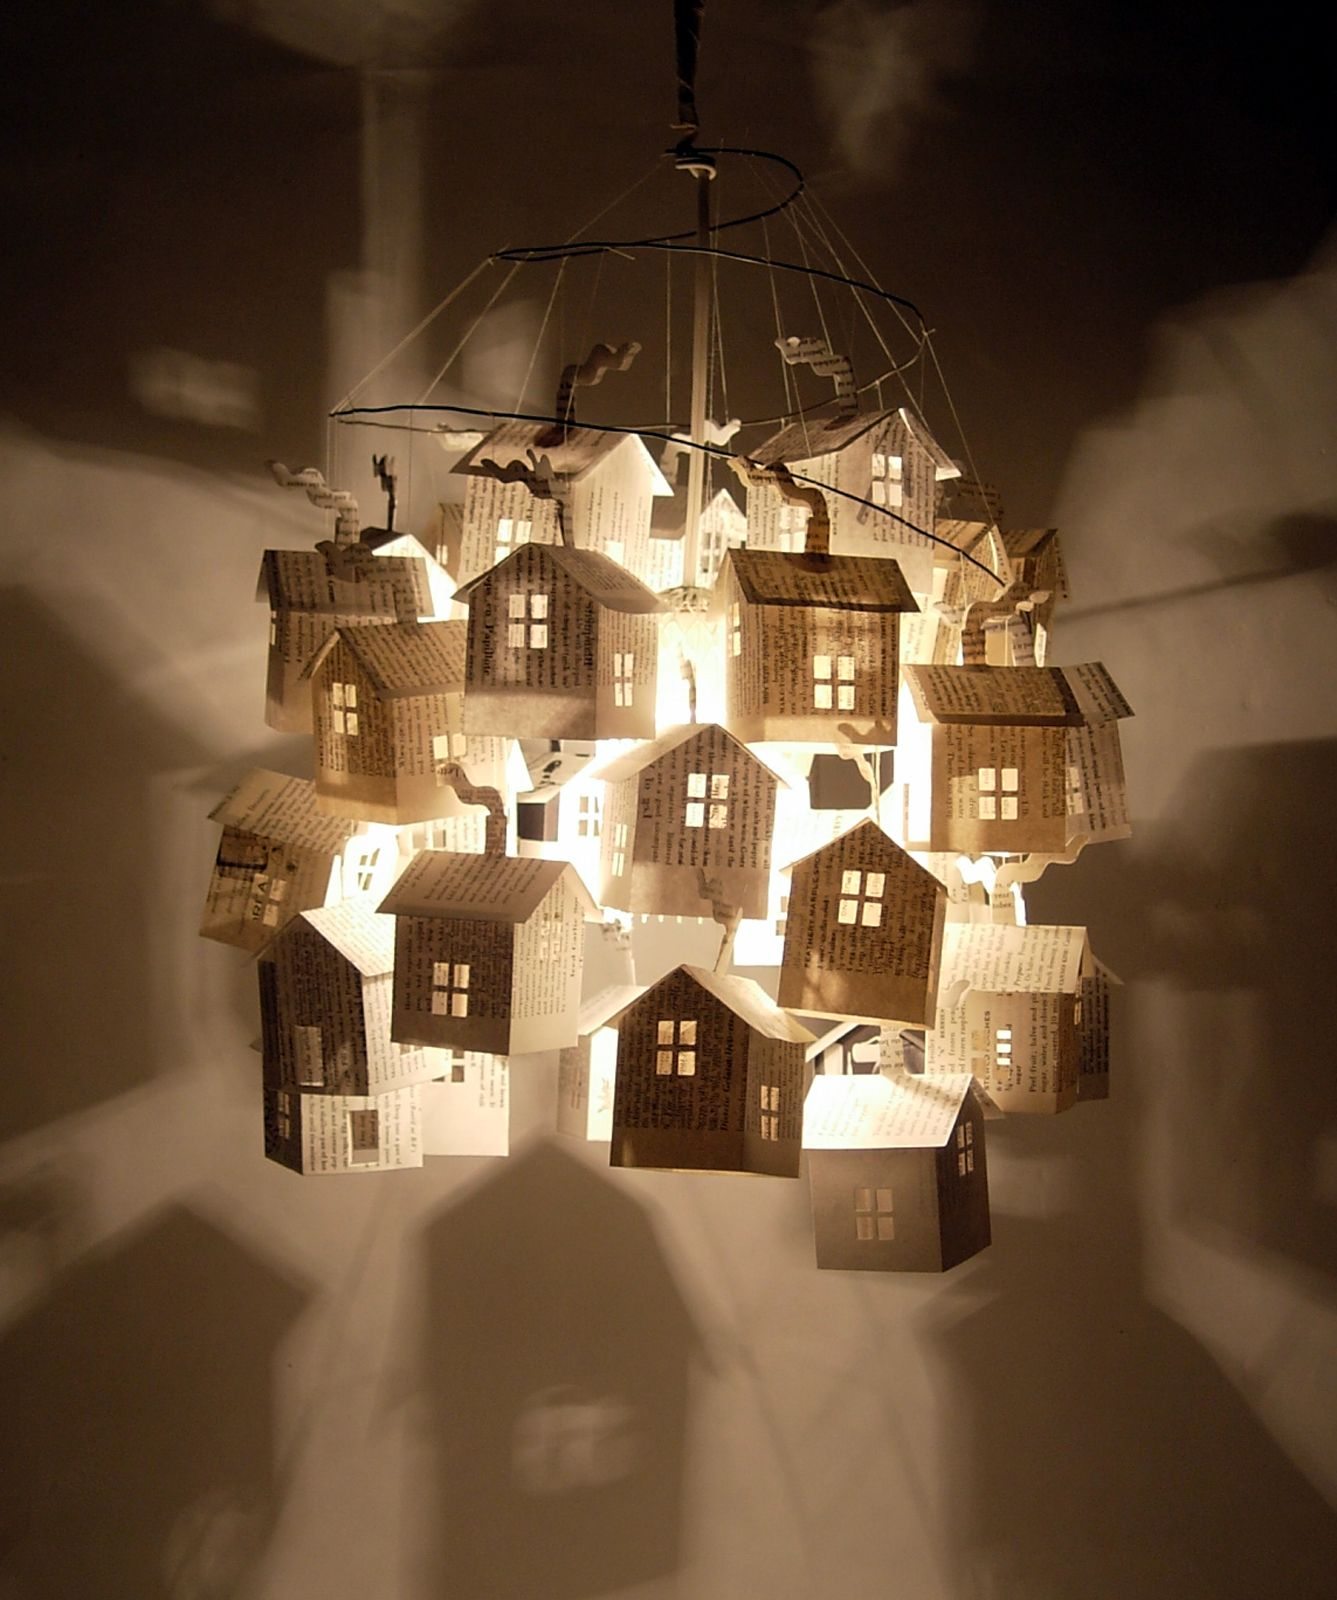 hutch studio: recycled carton chandelier I the shadows cast by the house on the surrounding walls are spectacular